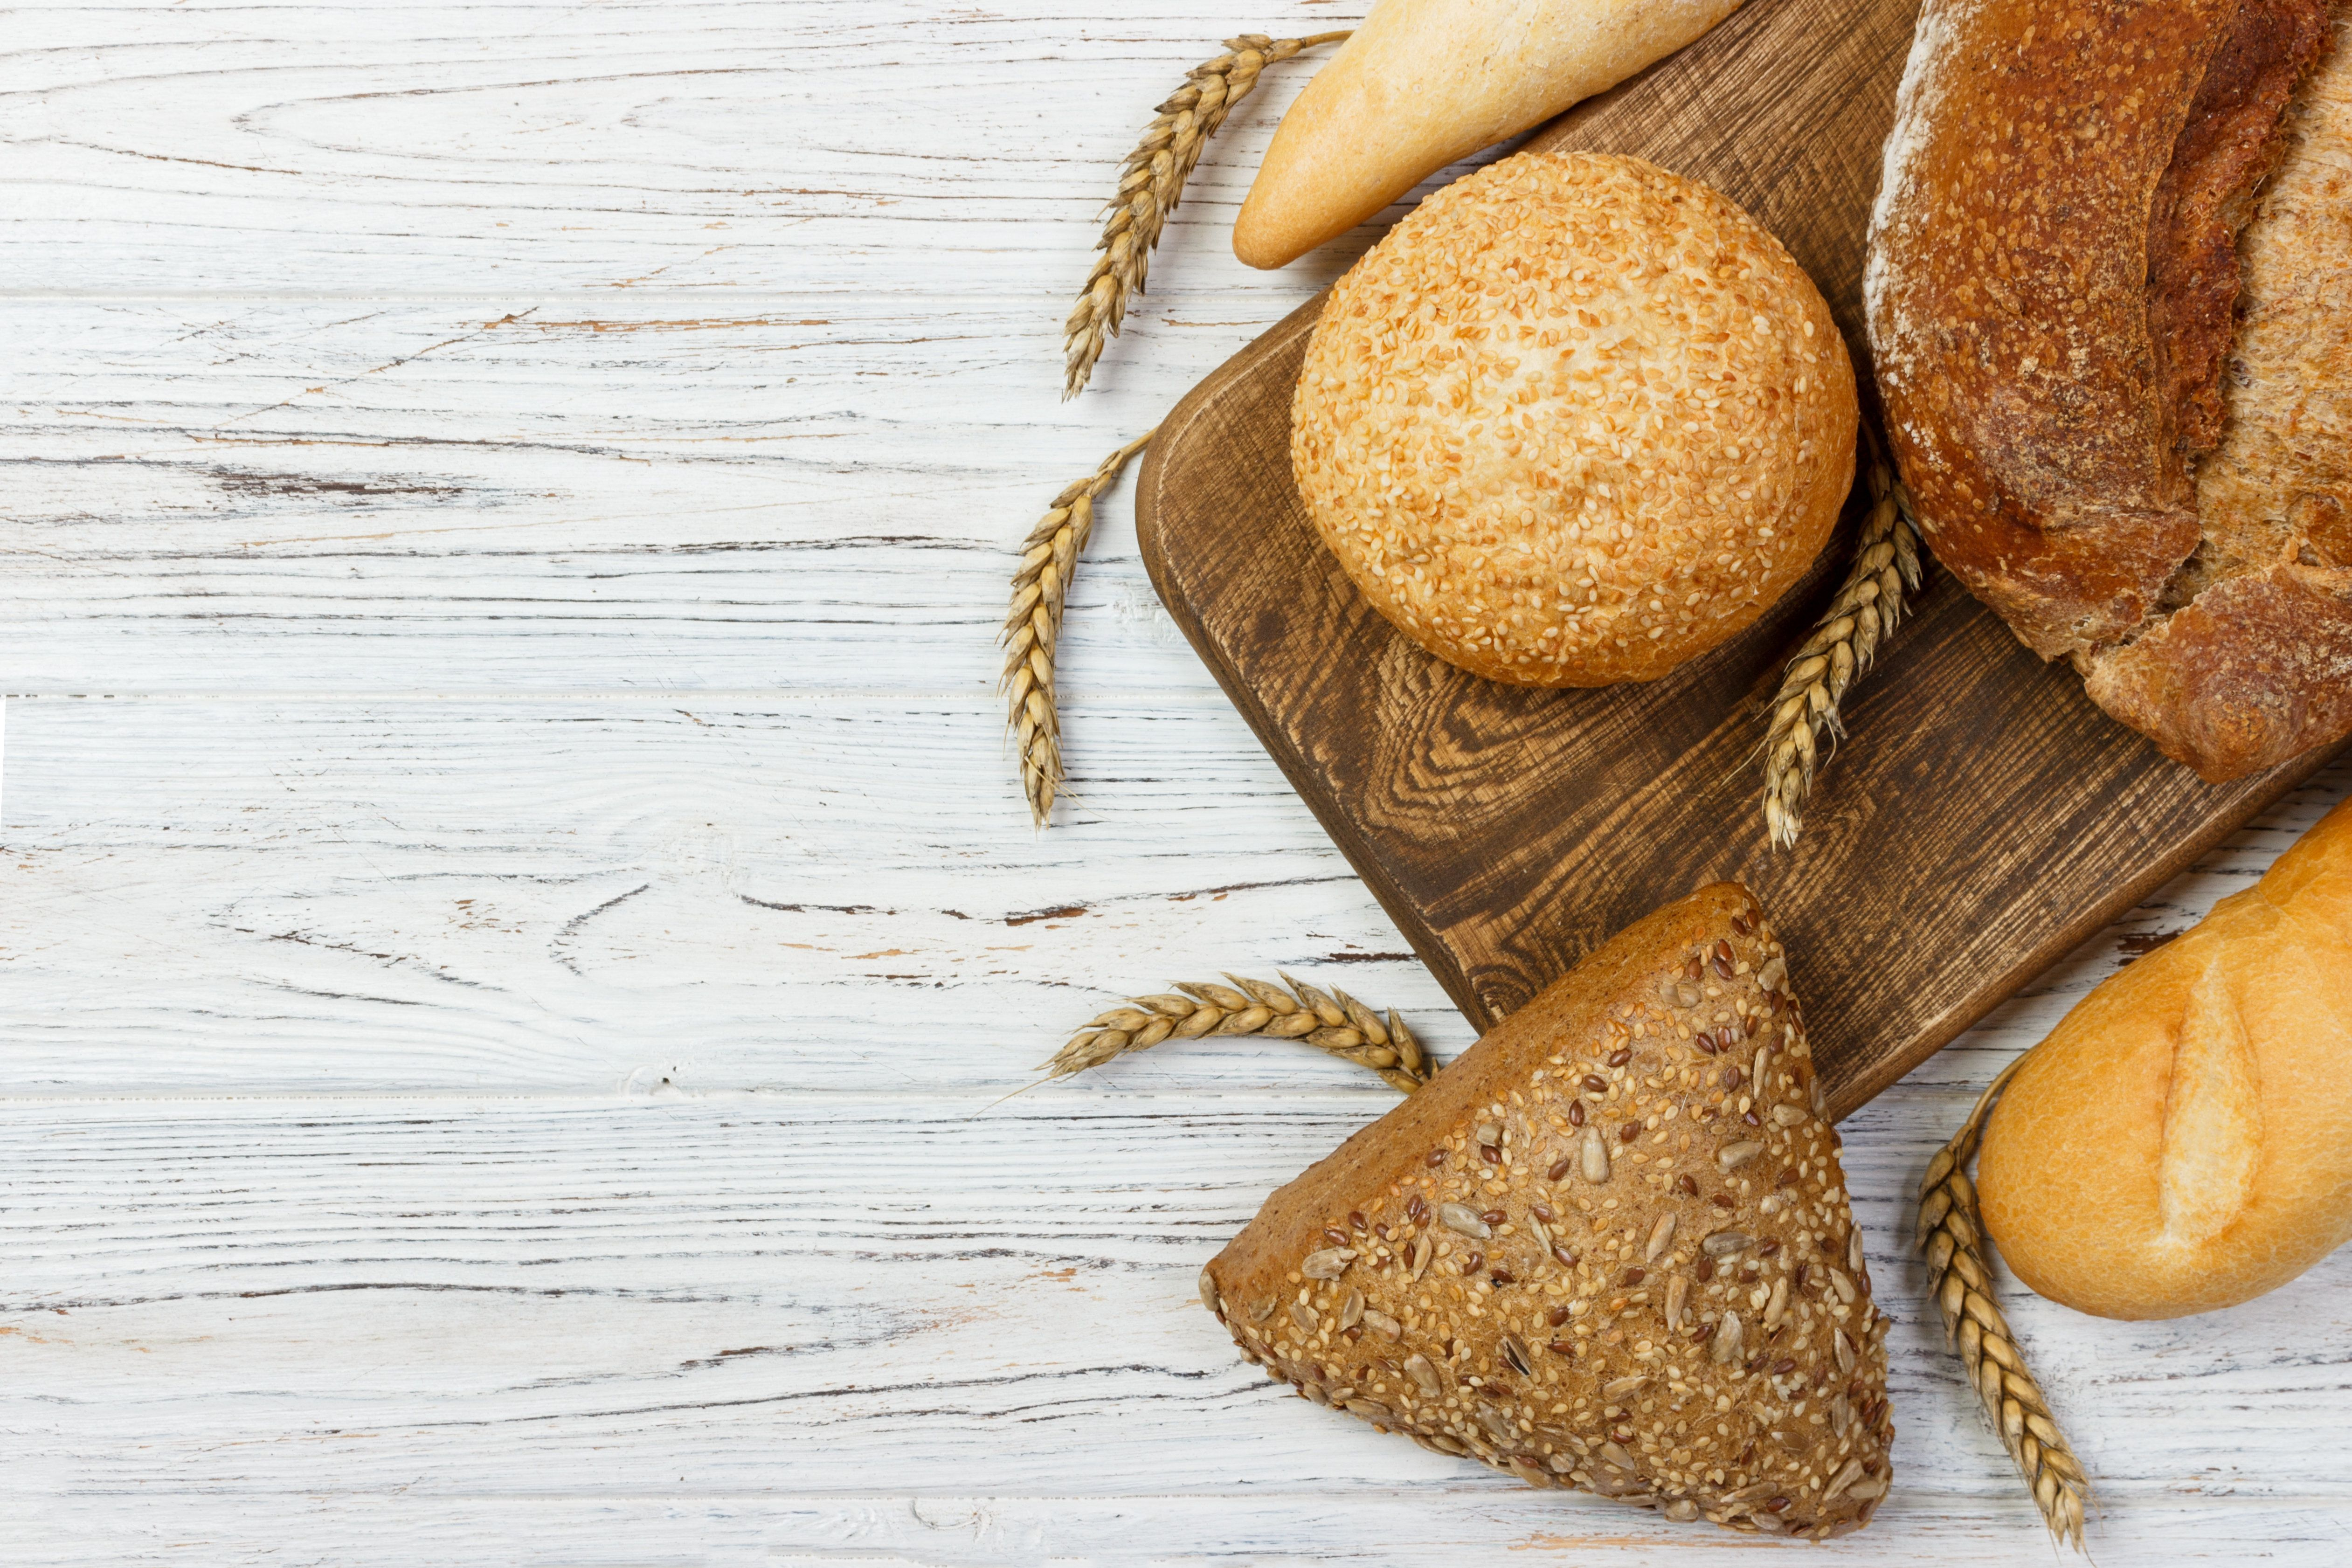 Bread and wheat on white wooden background.